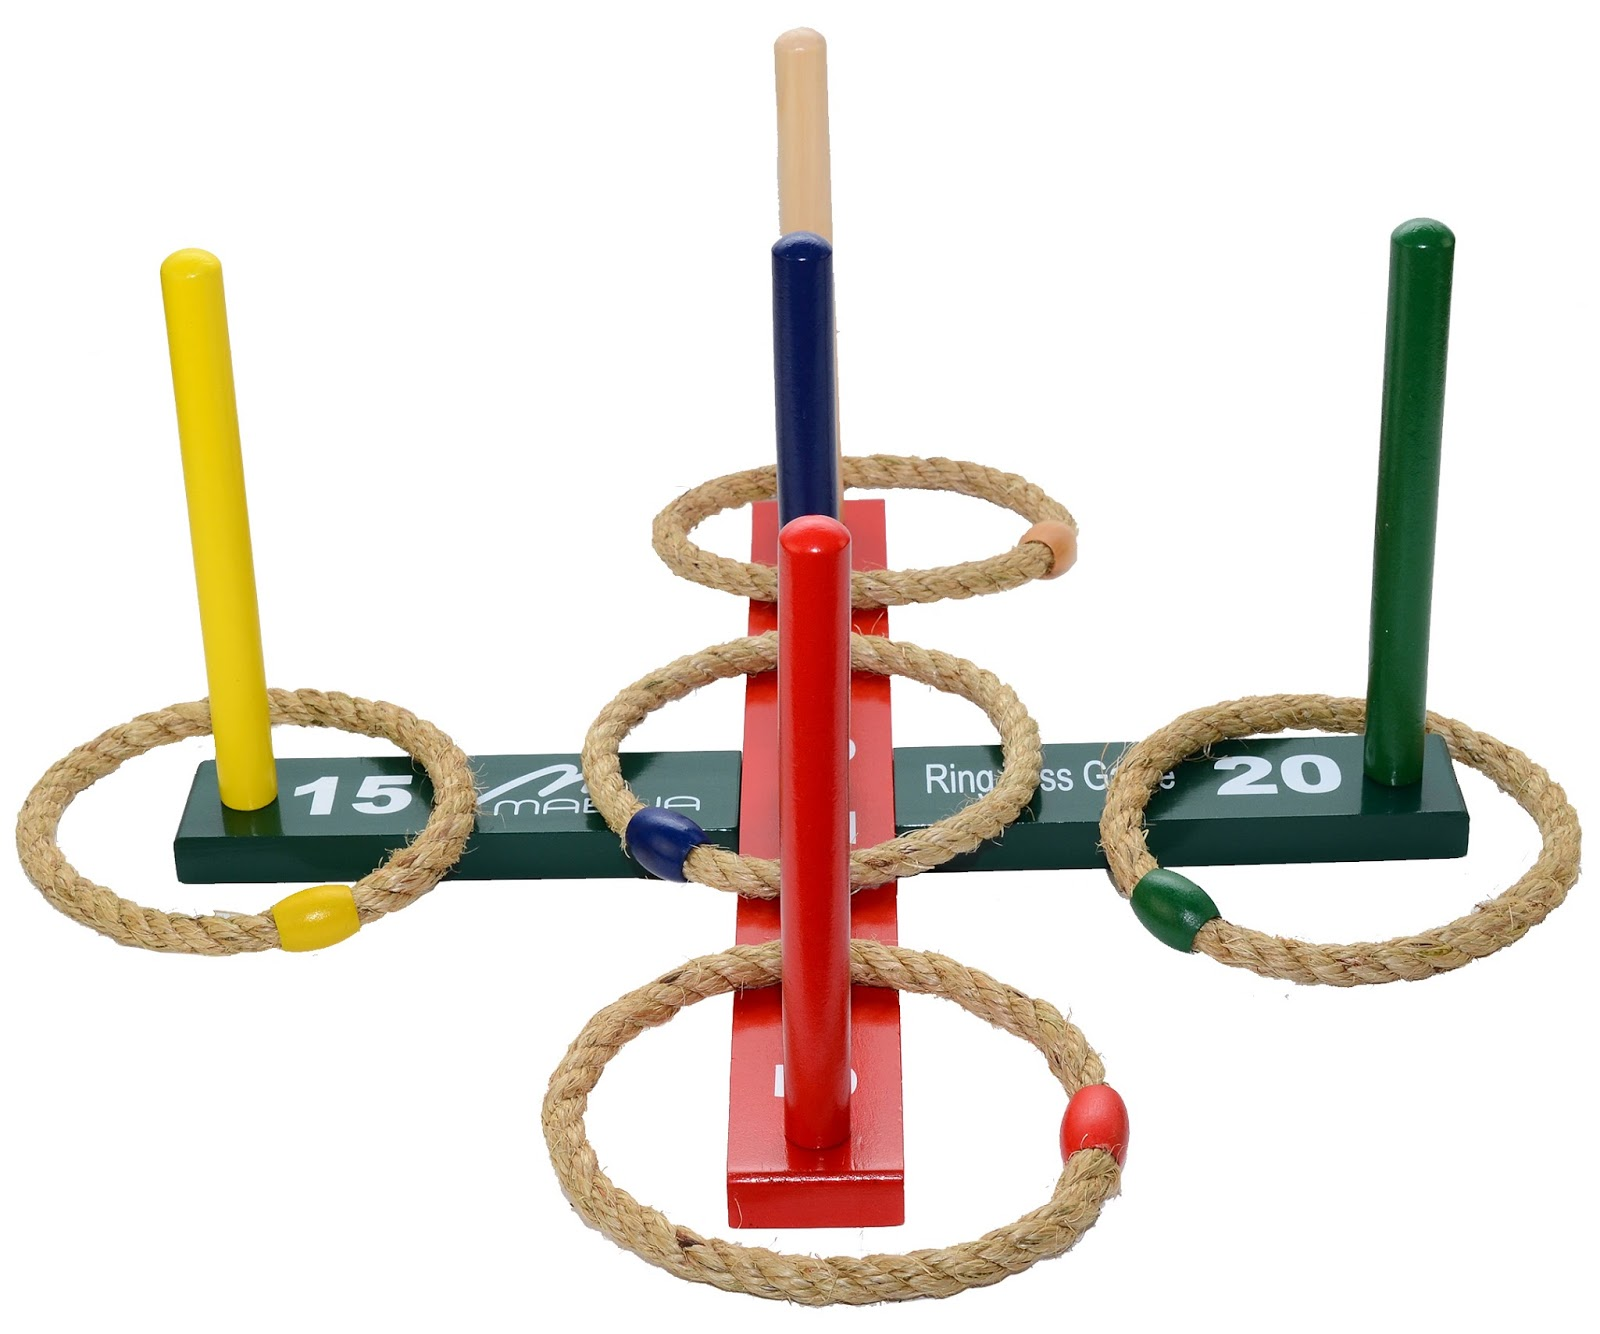 How To Set Up A Ring Toss Game